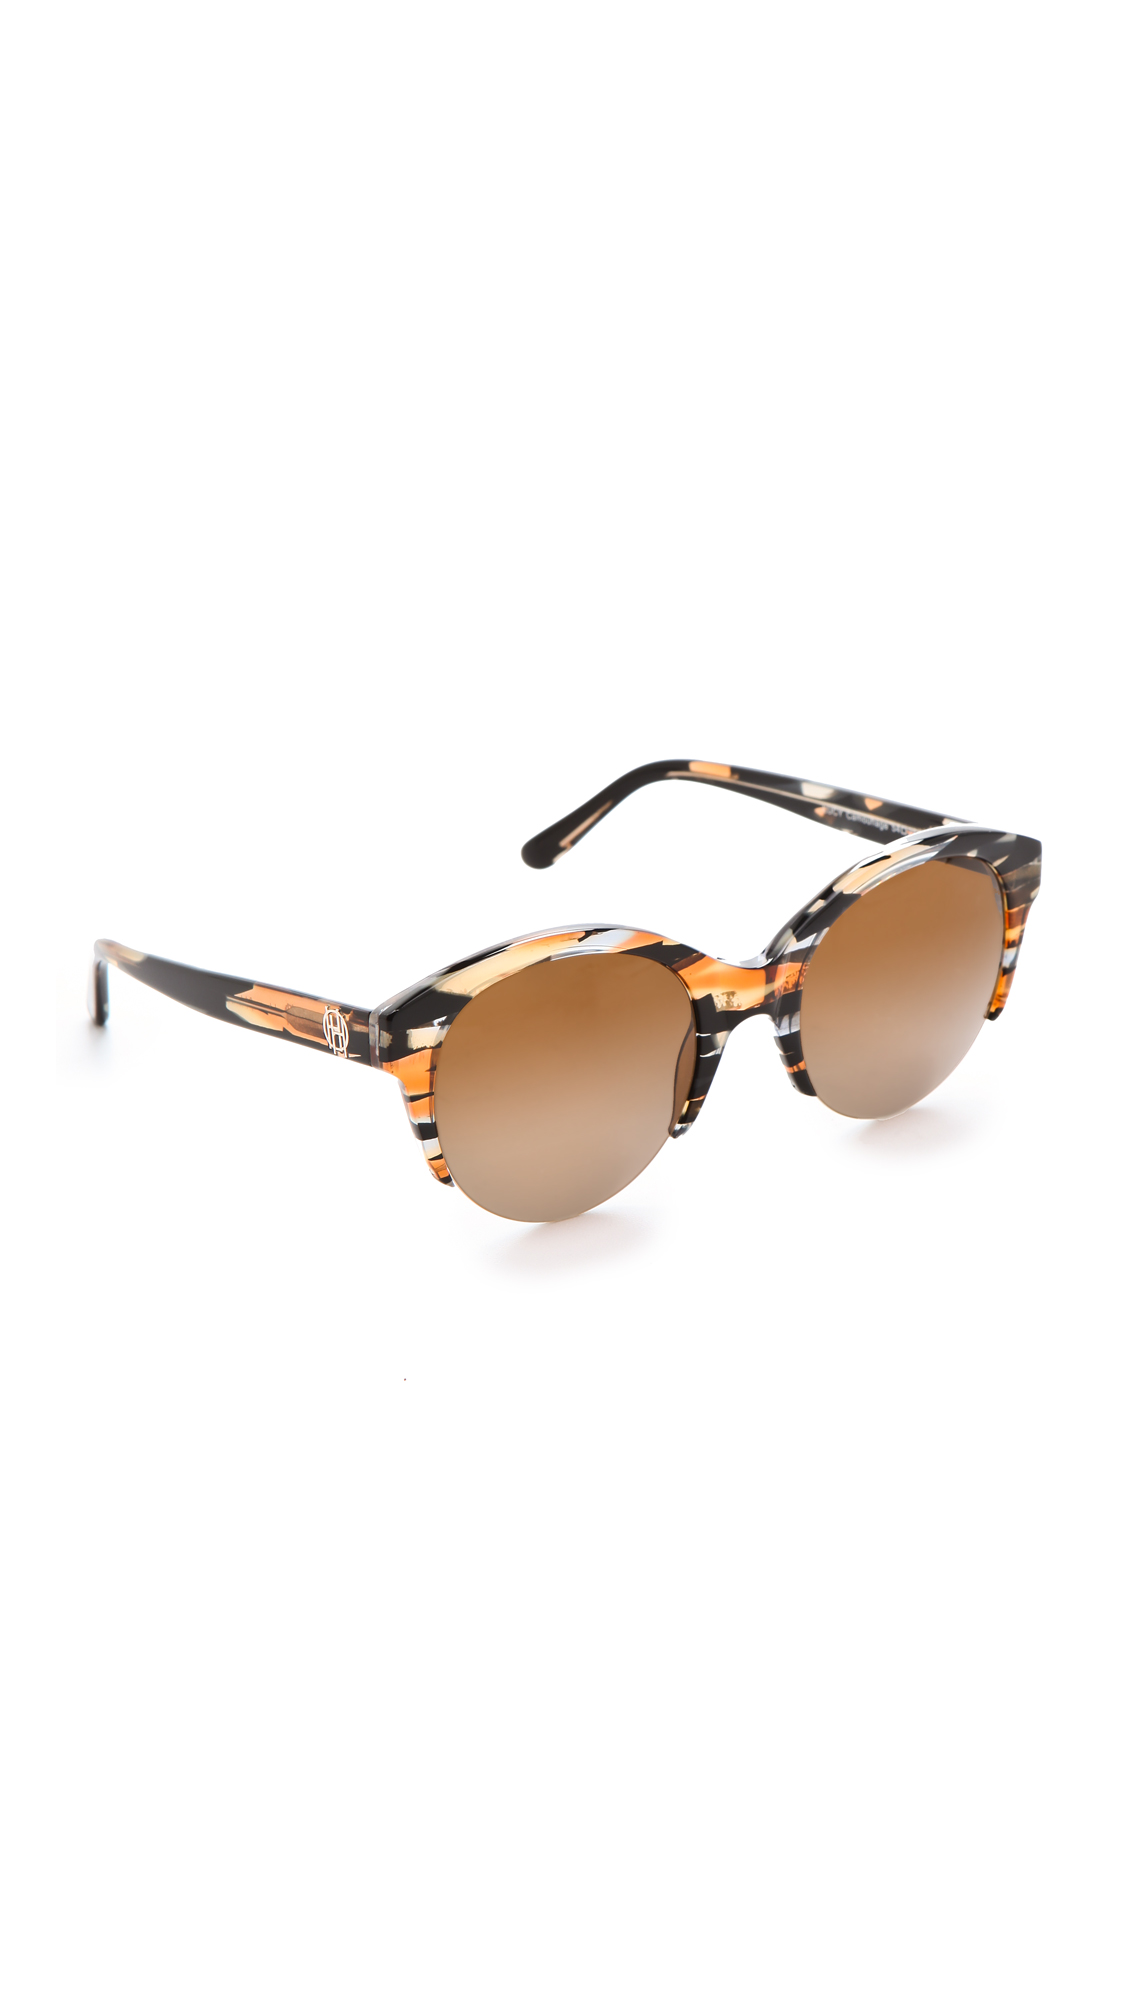 Lyst - House Of Harlow 1960 Lucy Sunglasses 283f01aac7